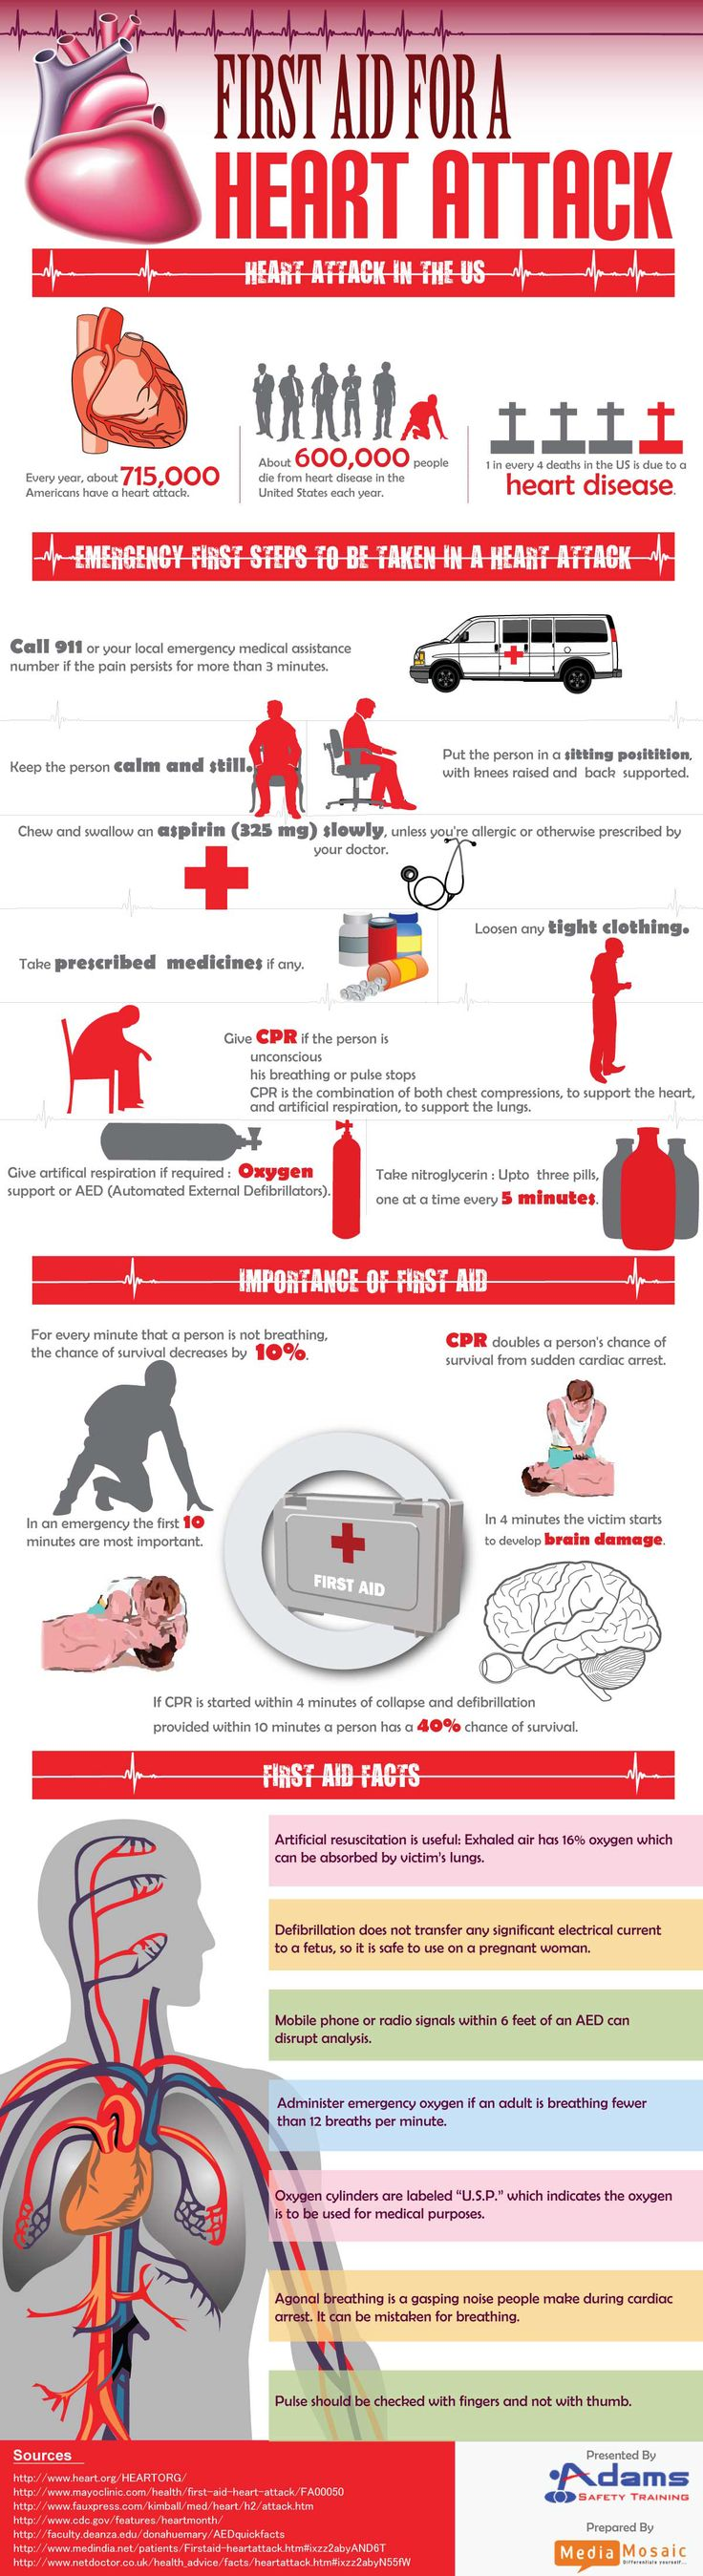 First Aid For A Heart Attack